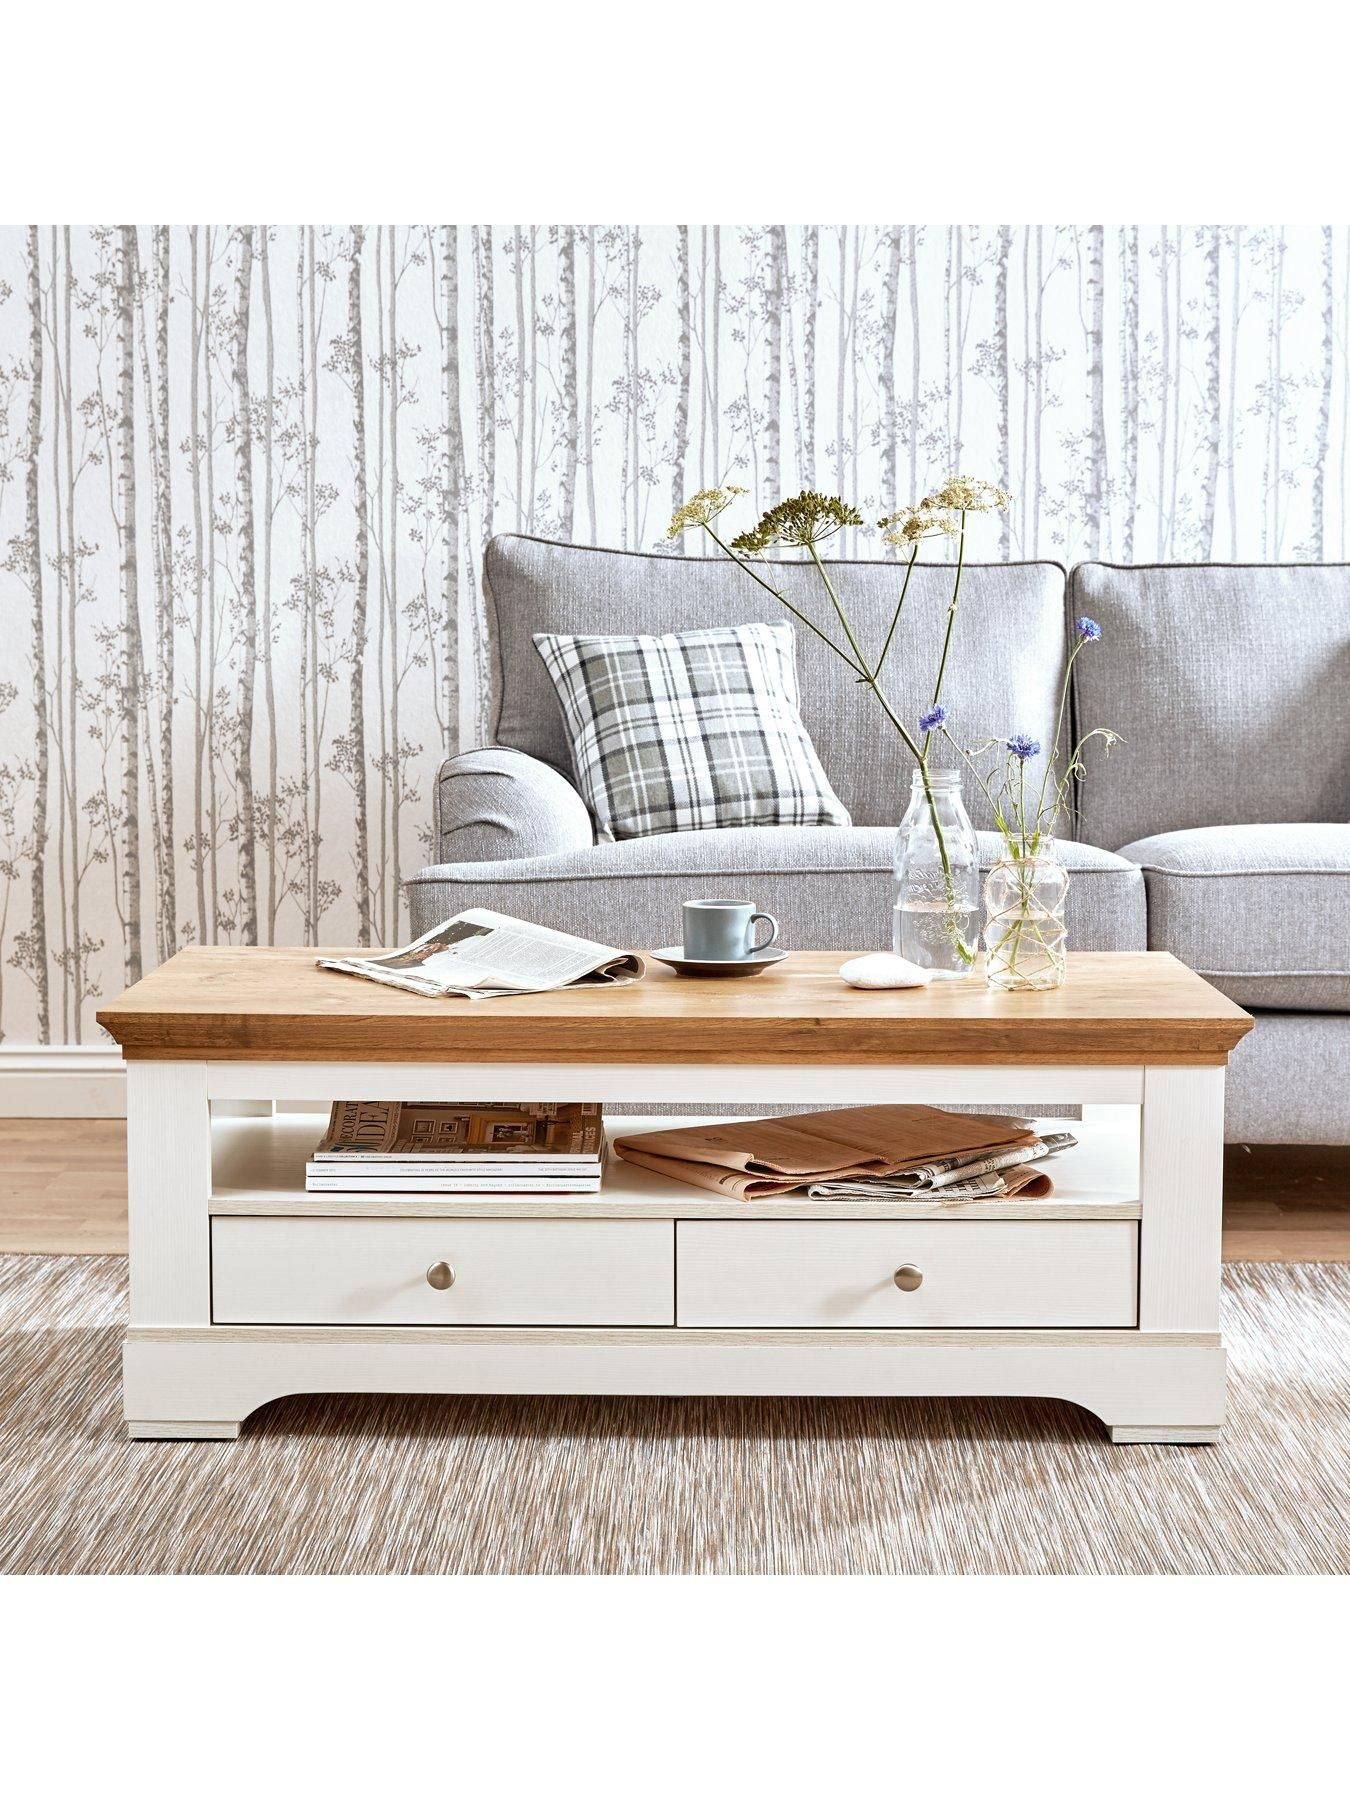 Ideal Home Wiltshire 2 Drawer Coffee Table | Pinterest | Drawers ...